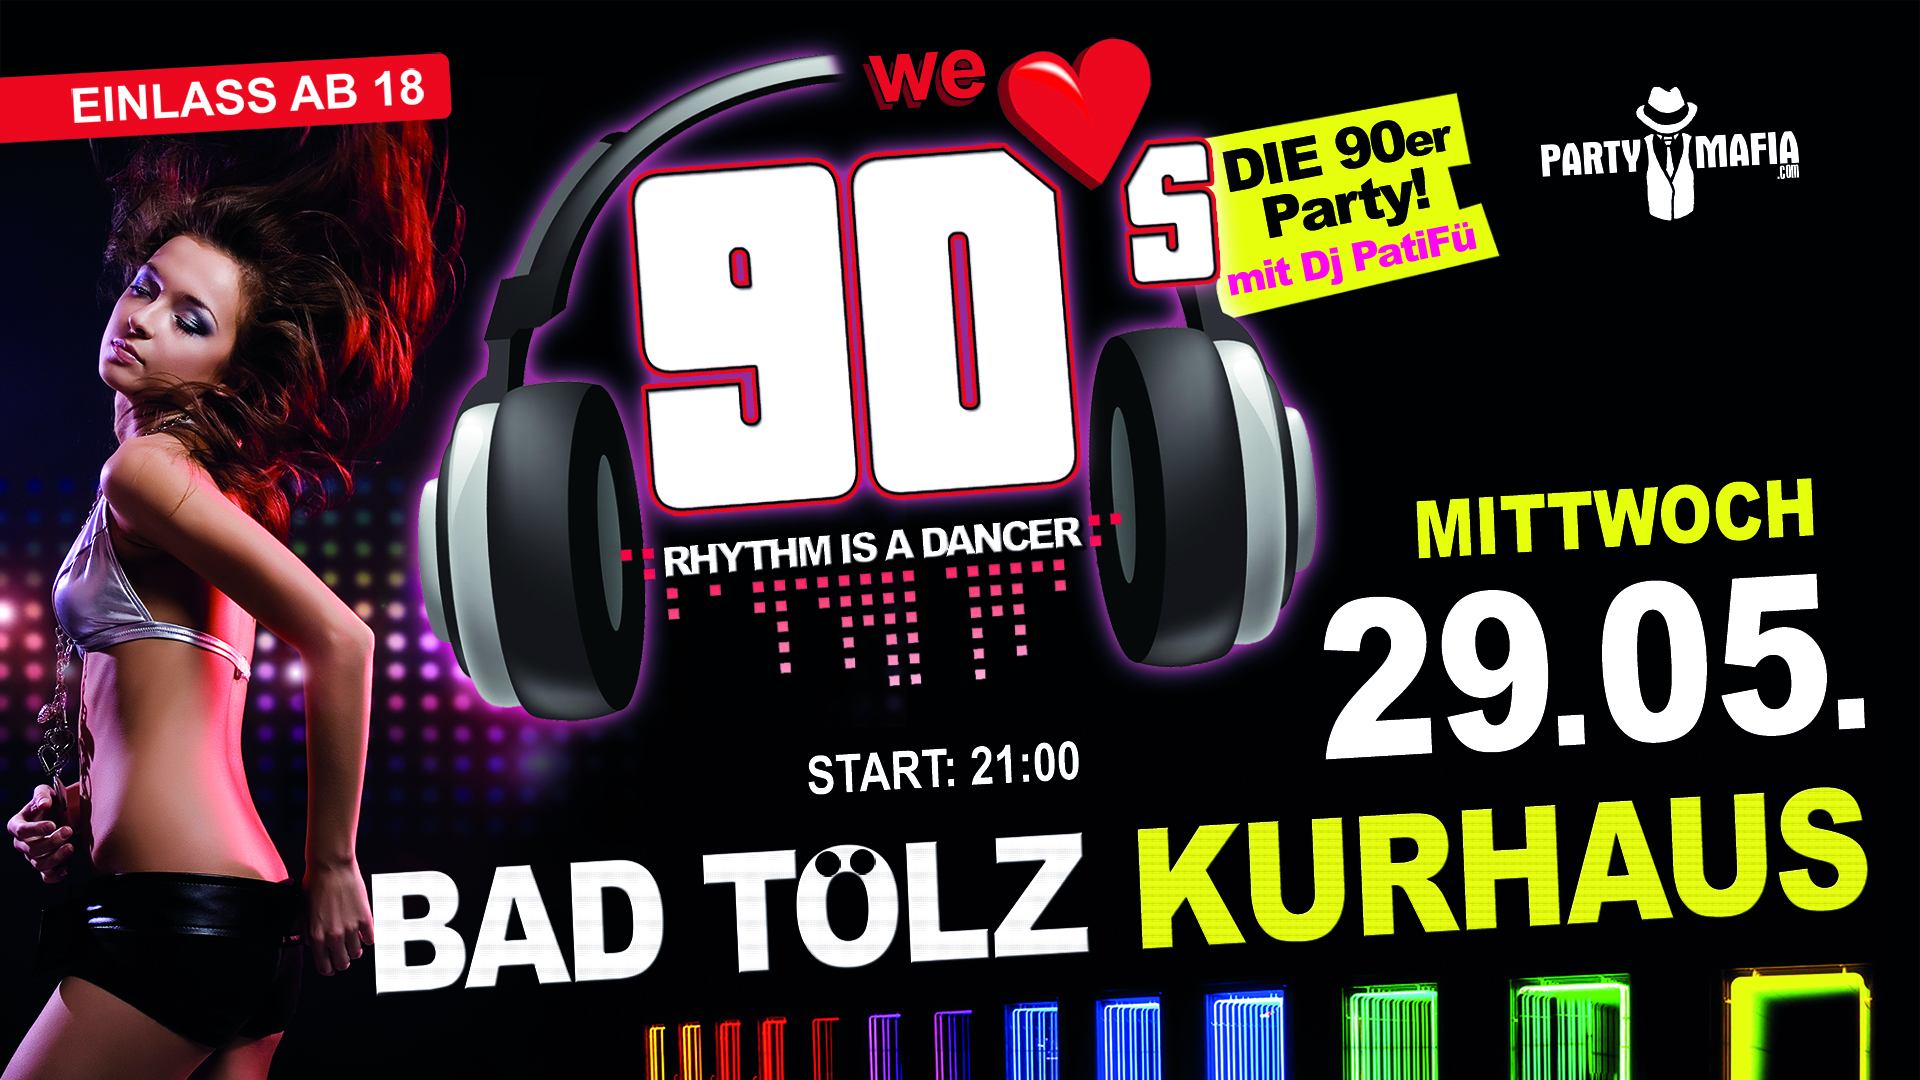 Party Highlight, Kultparty in Bad Tölz: Die neue 90er Party